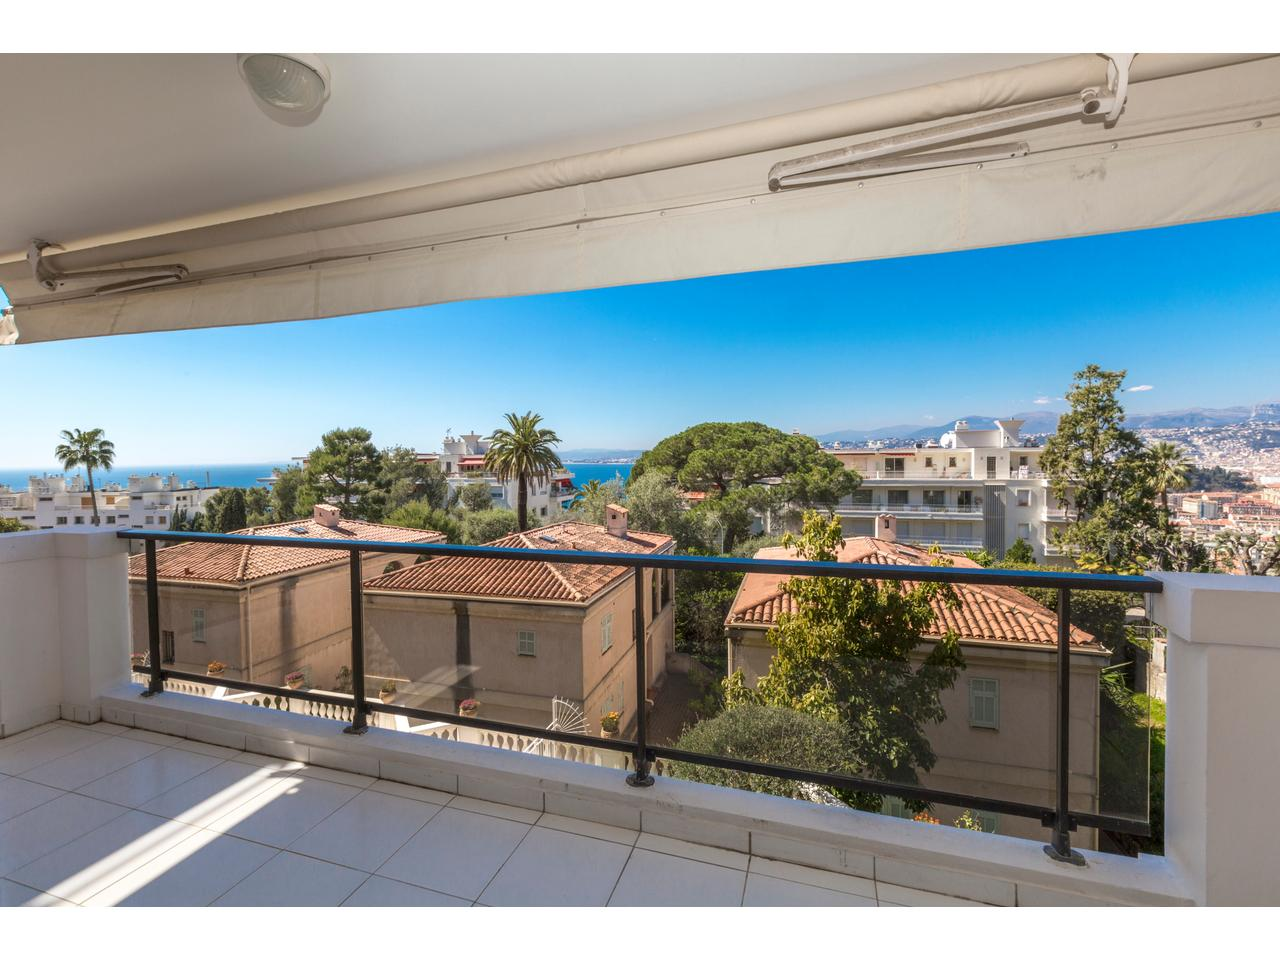 Immobilier nice vue mer appartement nice mont boron a for Immobilier avec terrasse